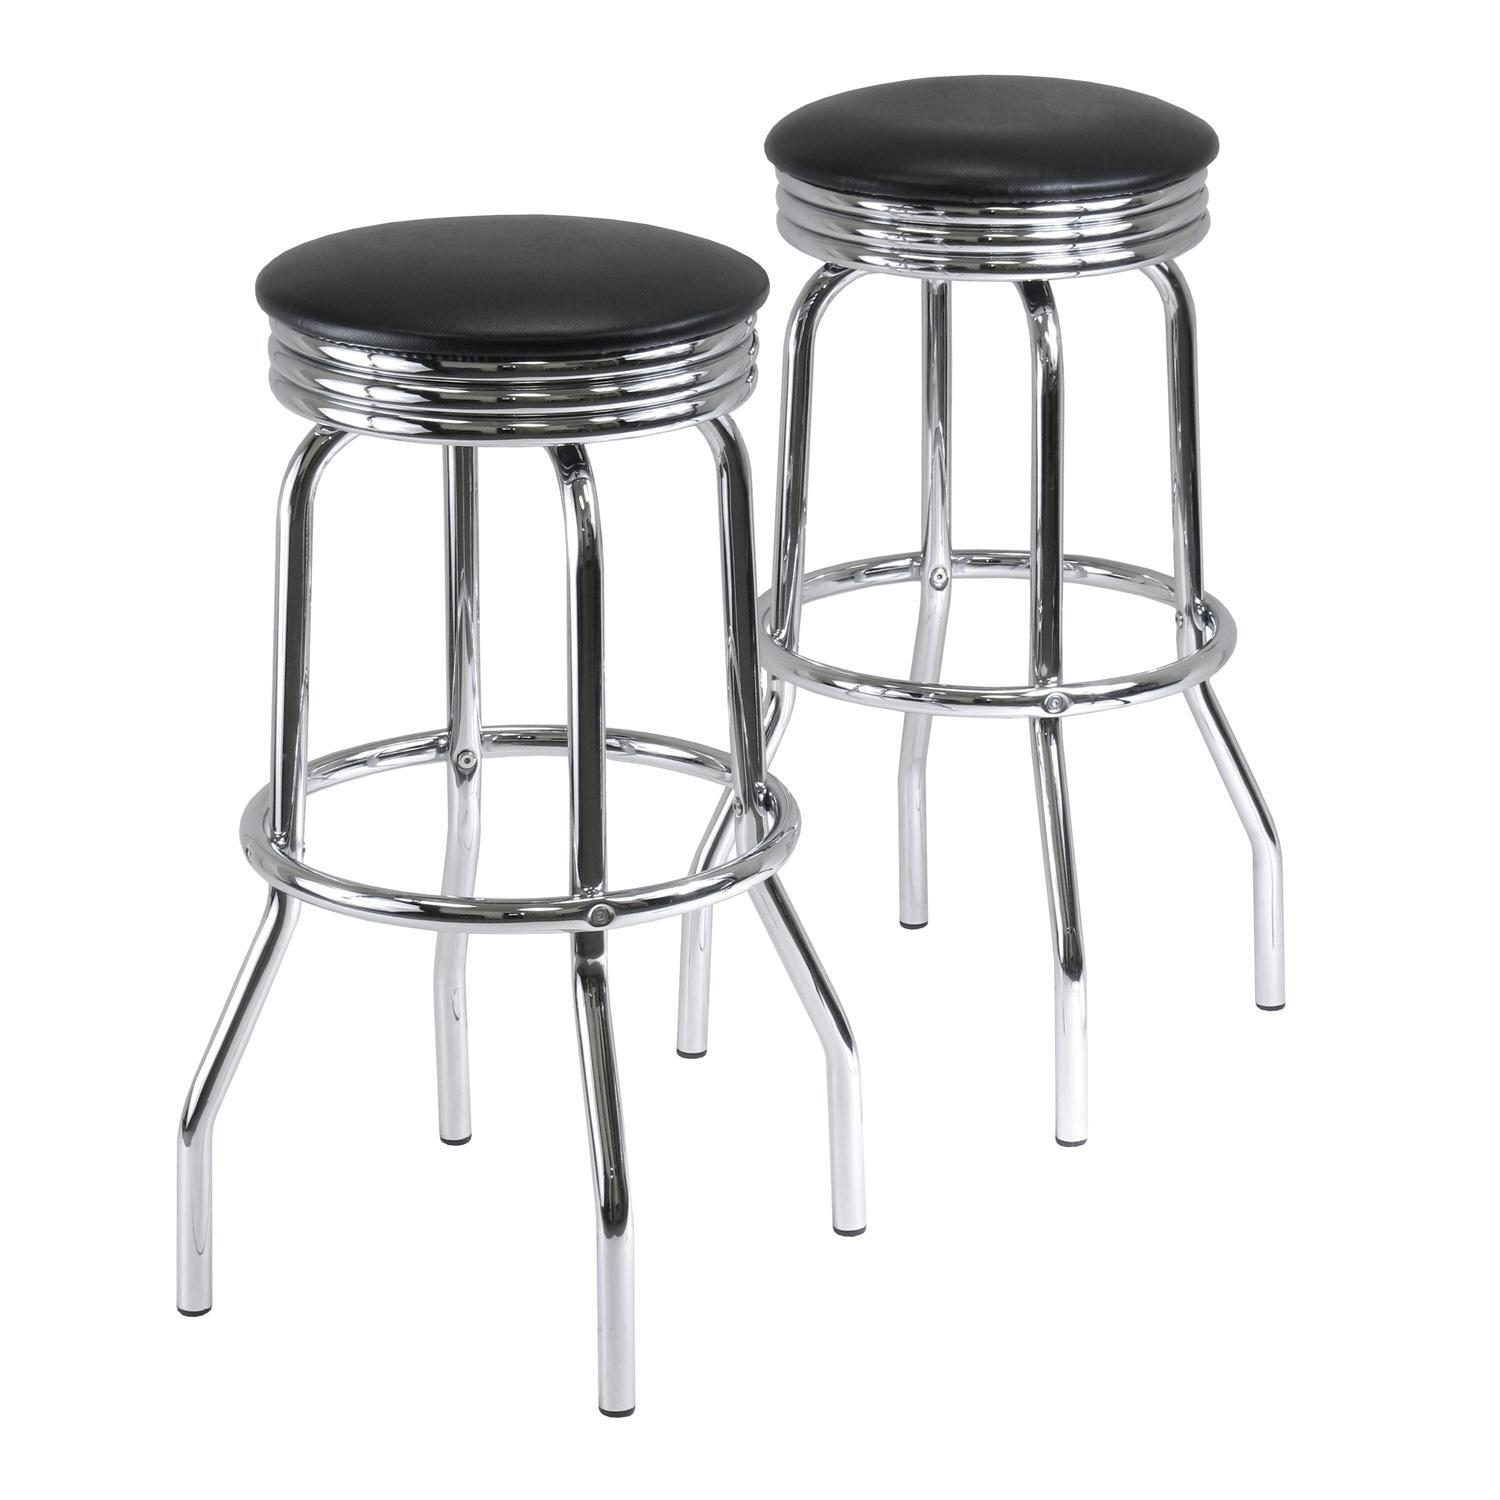 Winsome Summit Set of 2 Swivel Bar Stools by OJ Commerce  : 93028summitsetof2swivelbarstools from www.ojcommerce.com size 1500 x 1500 jpeg 122kB